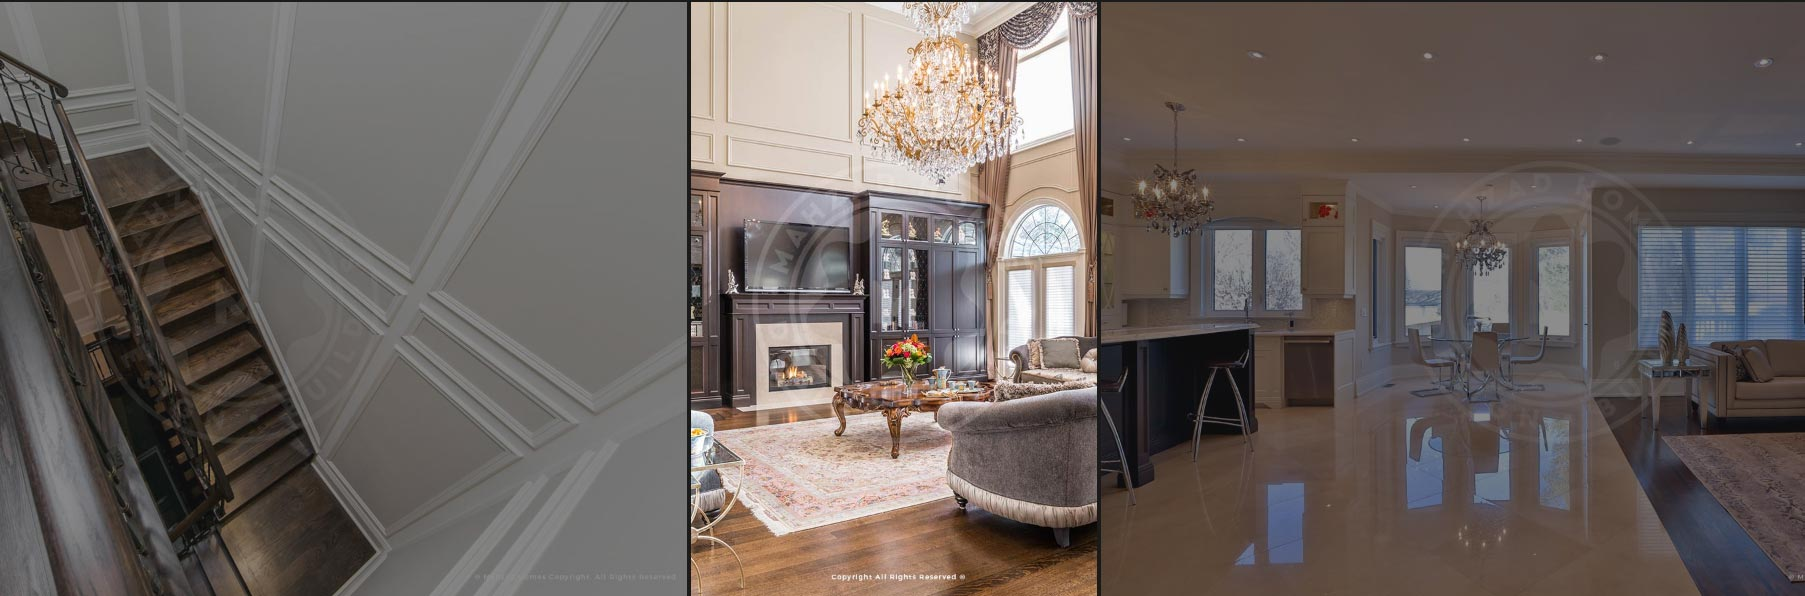 Top interior designers toronto renovation business directory - How much interior designer charge per hour ...